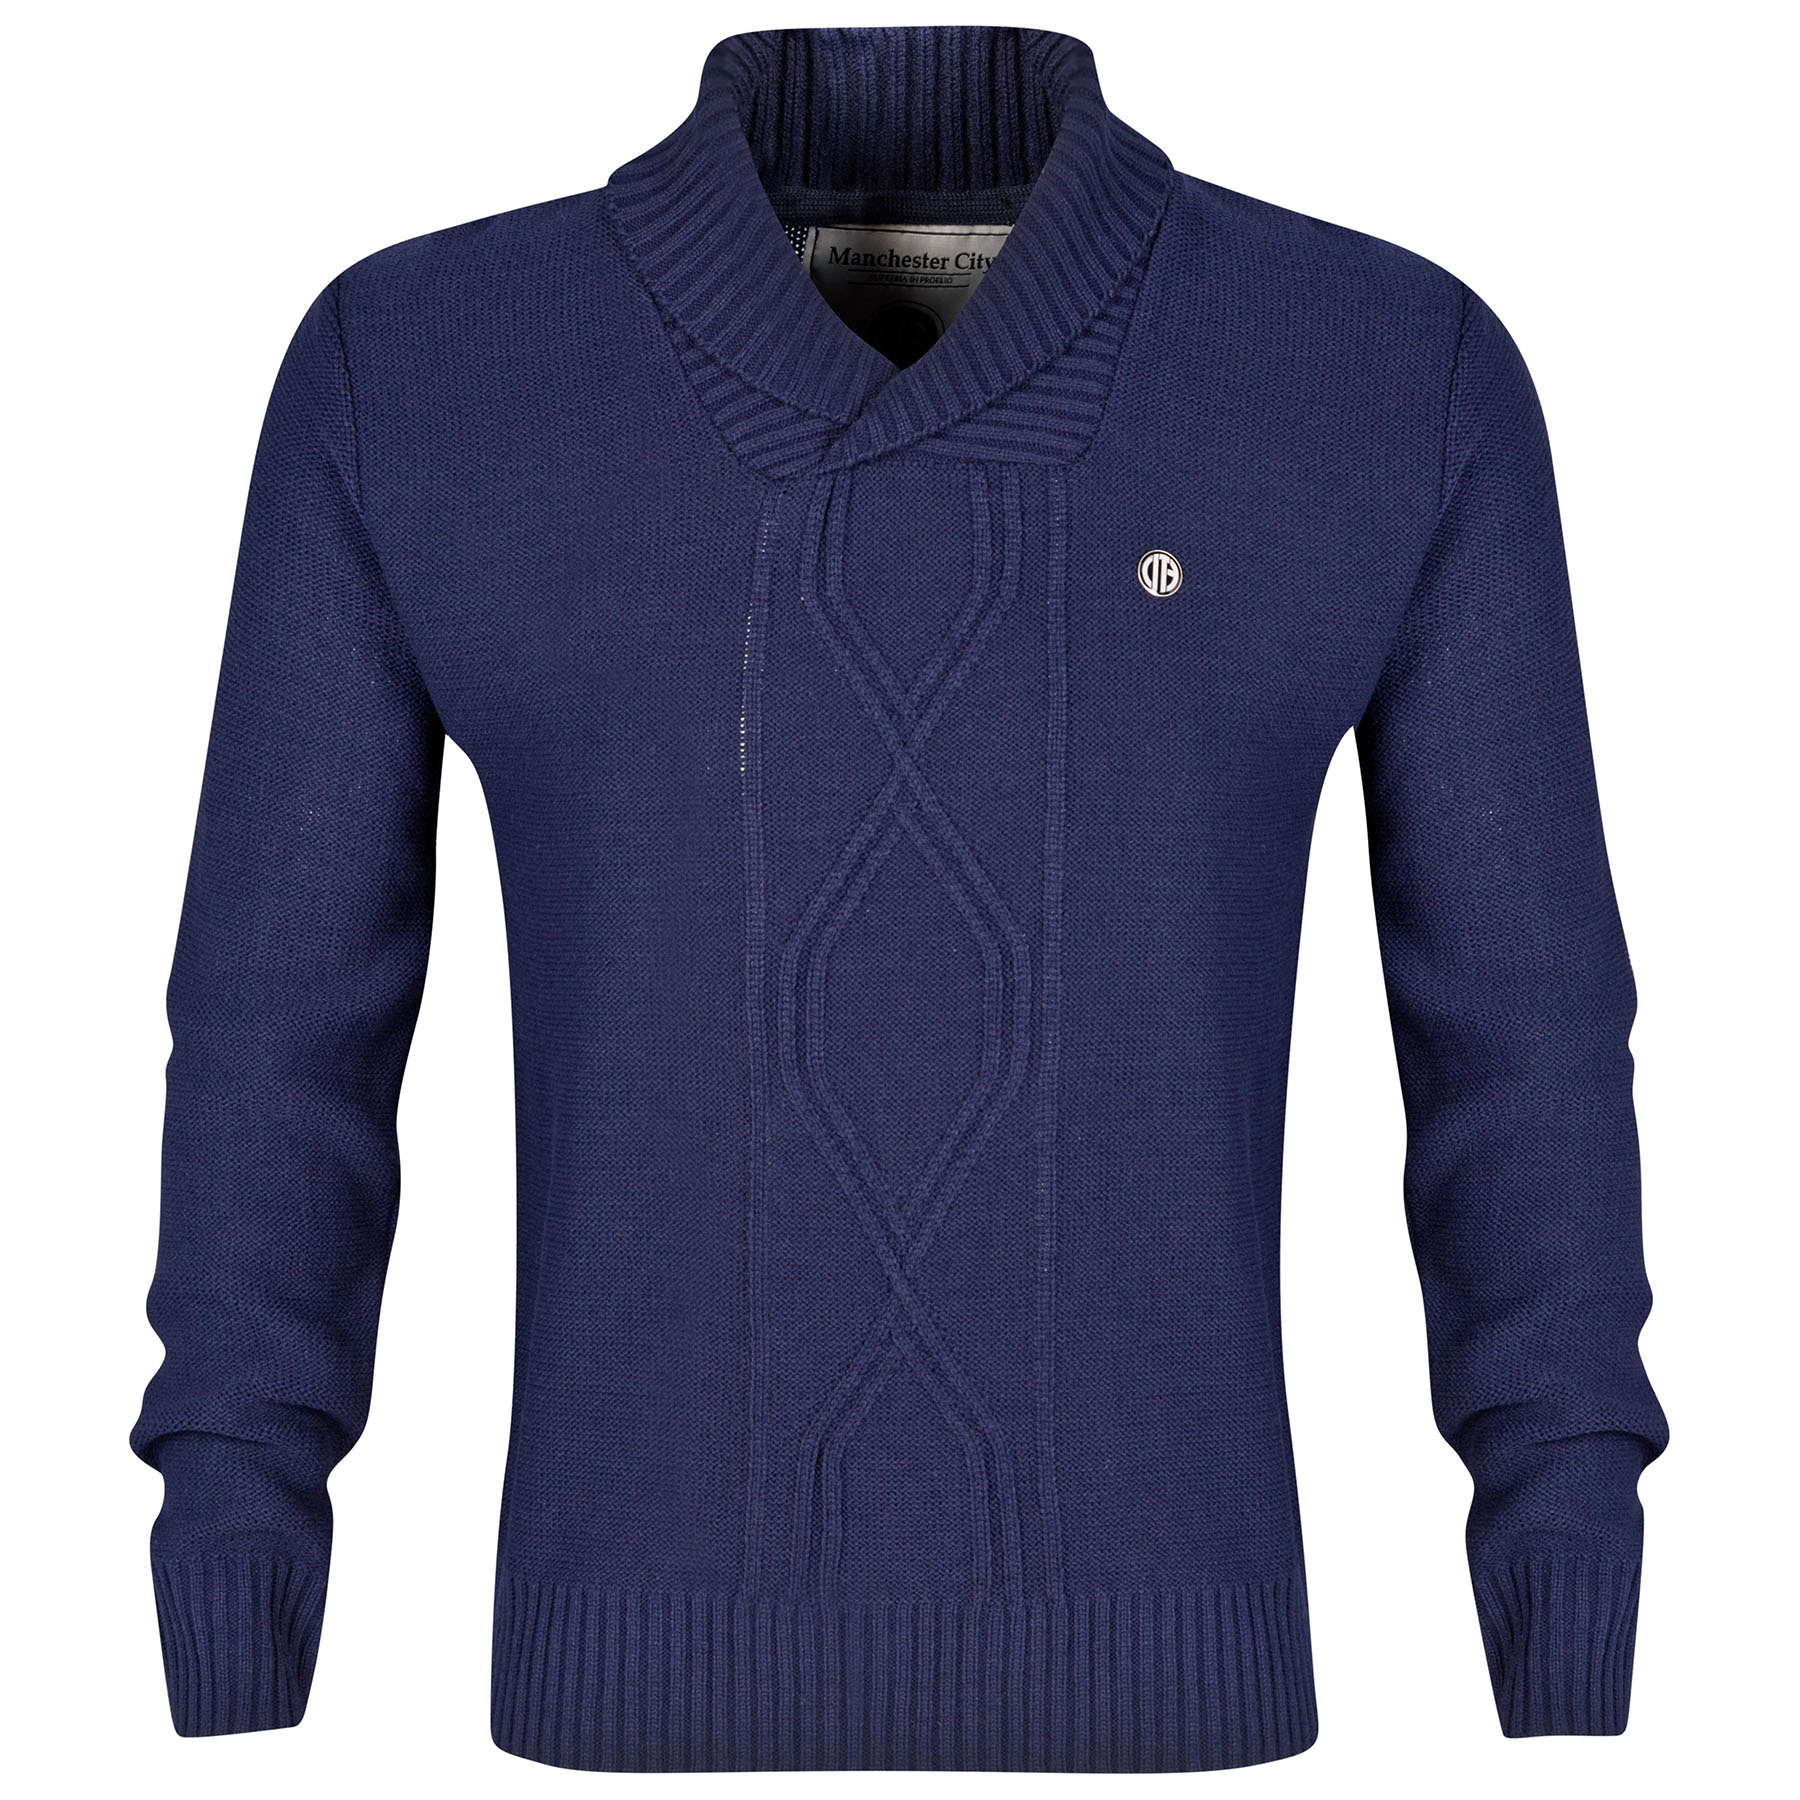 Manchester City Button Neck Jumper - Navy - Mens